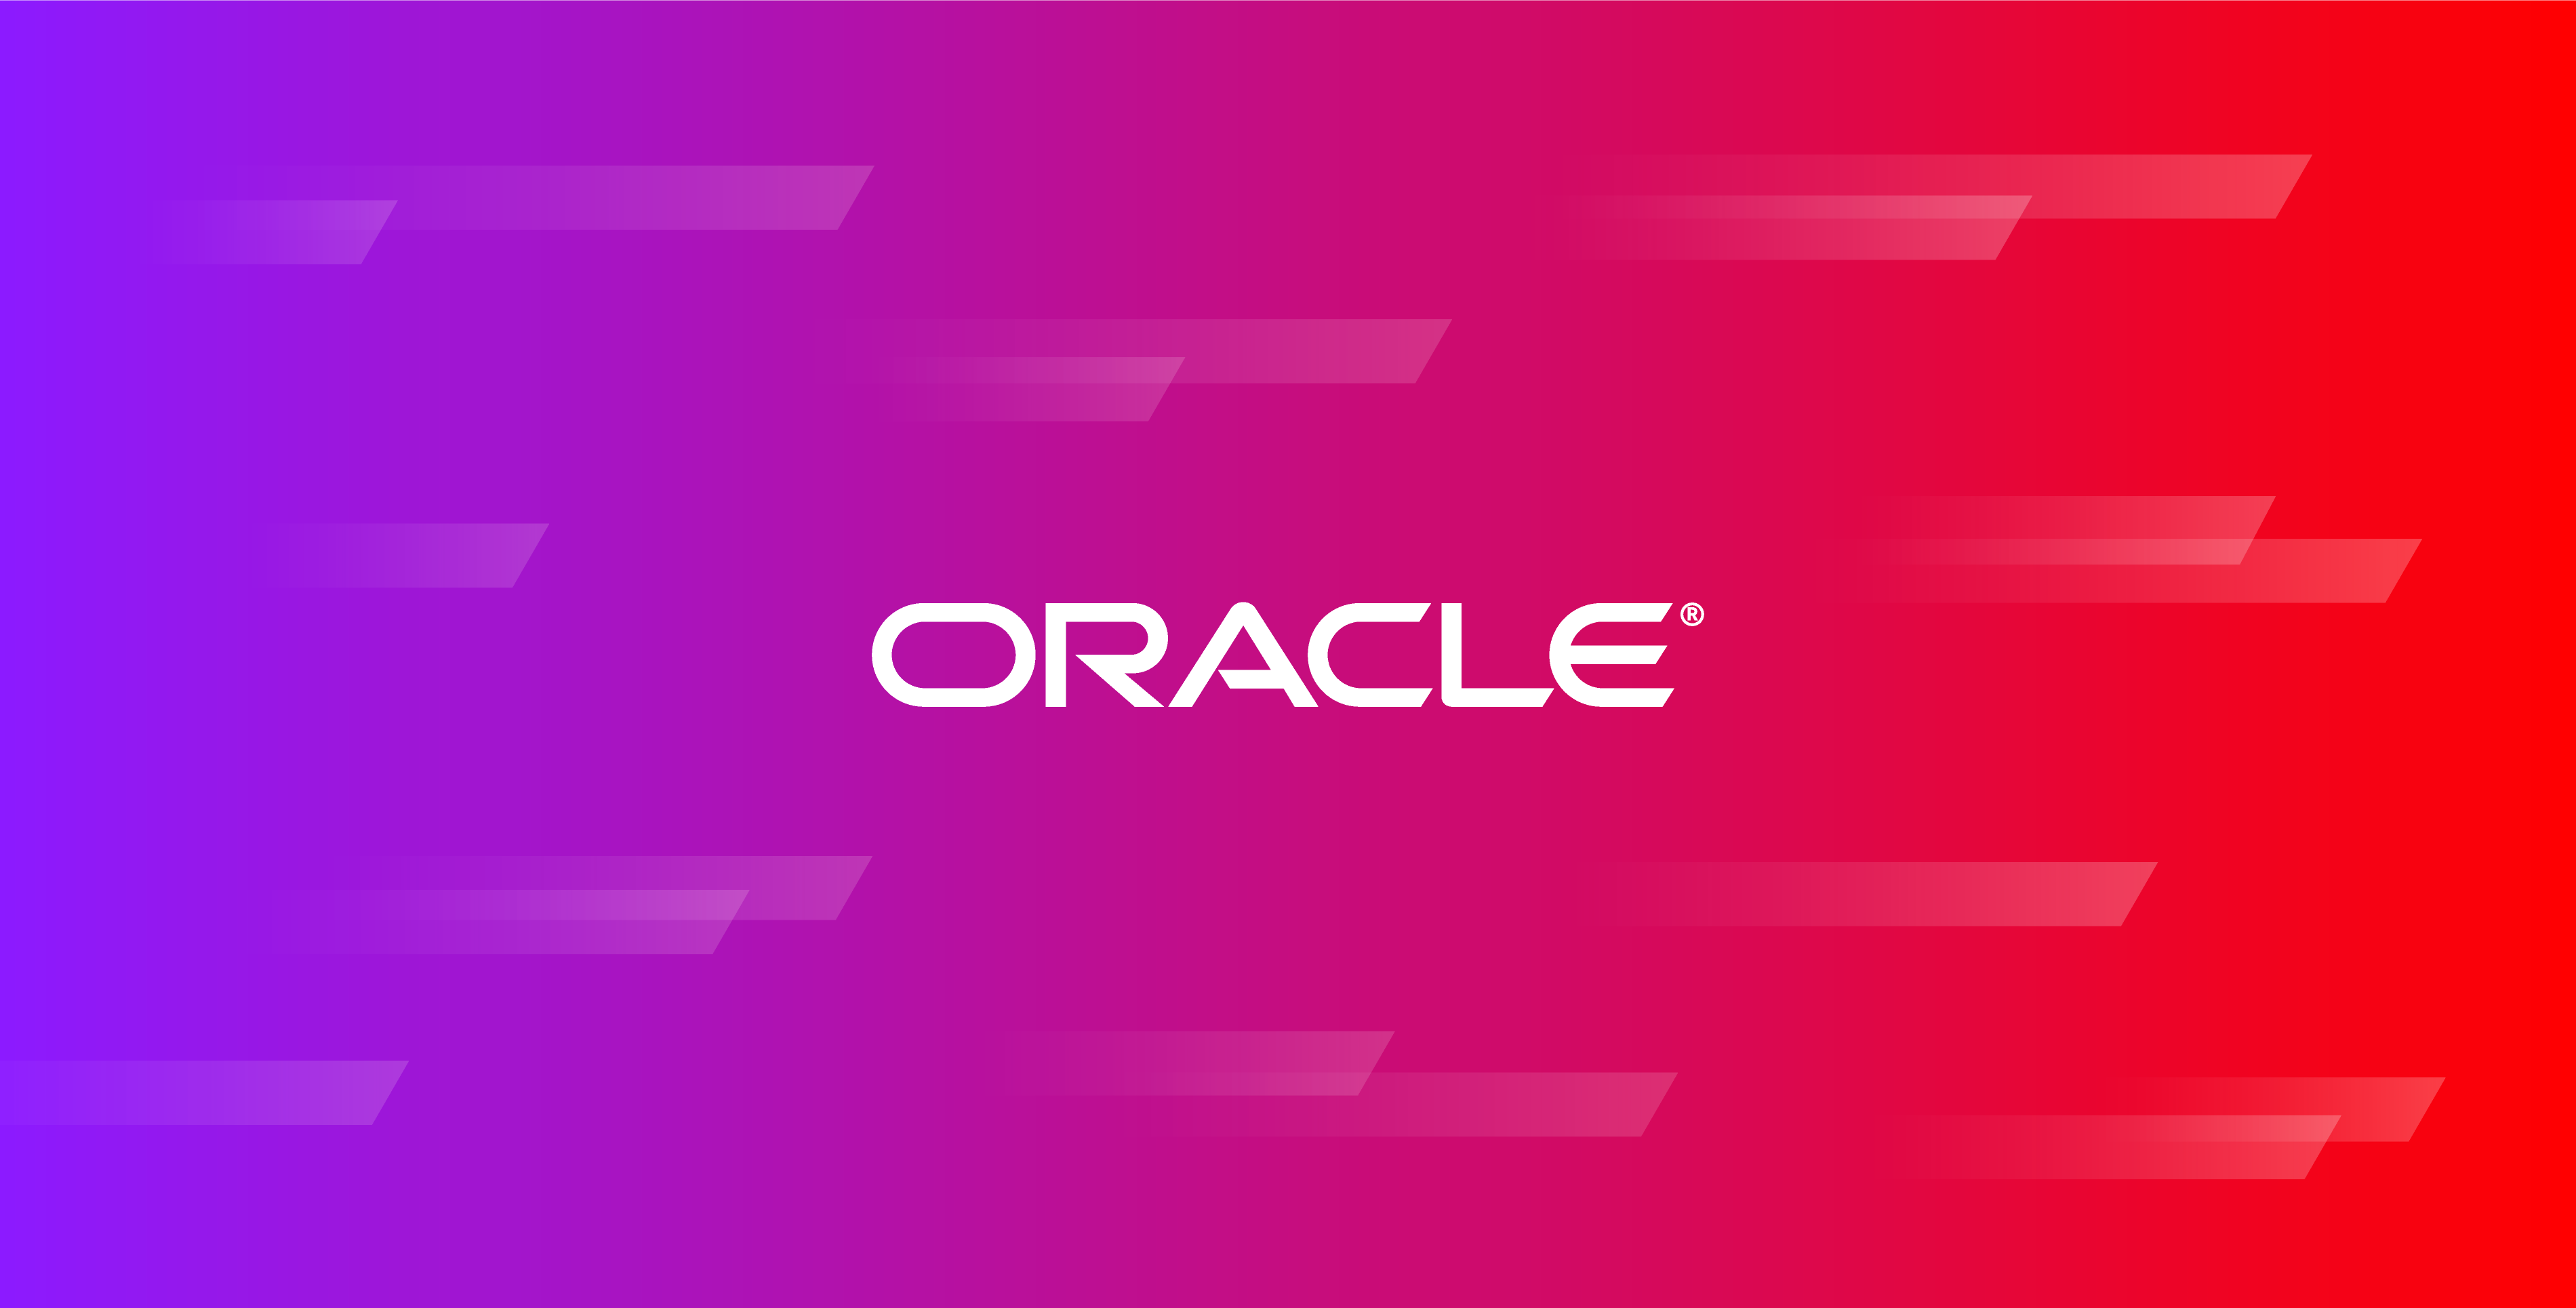 Oracle Procedure çağırma işlemi